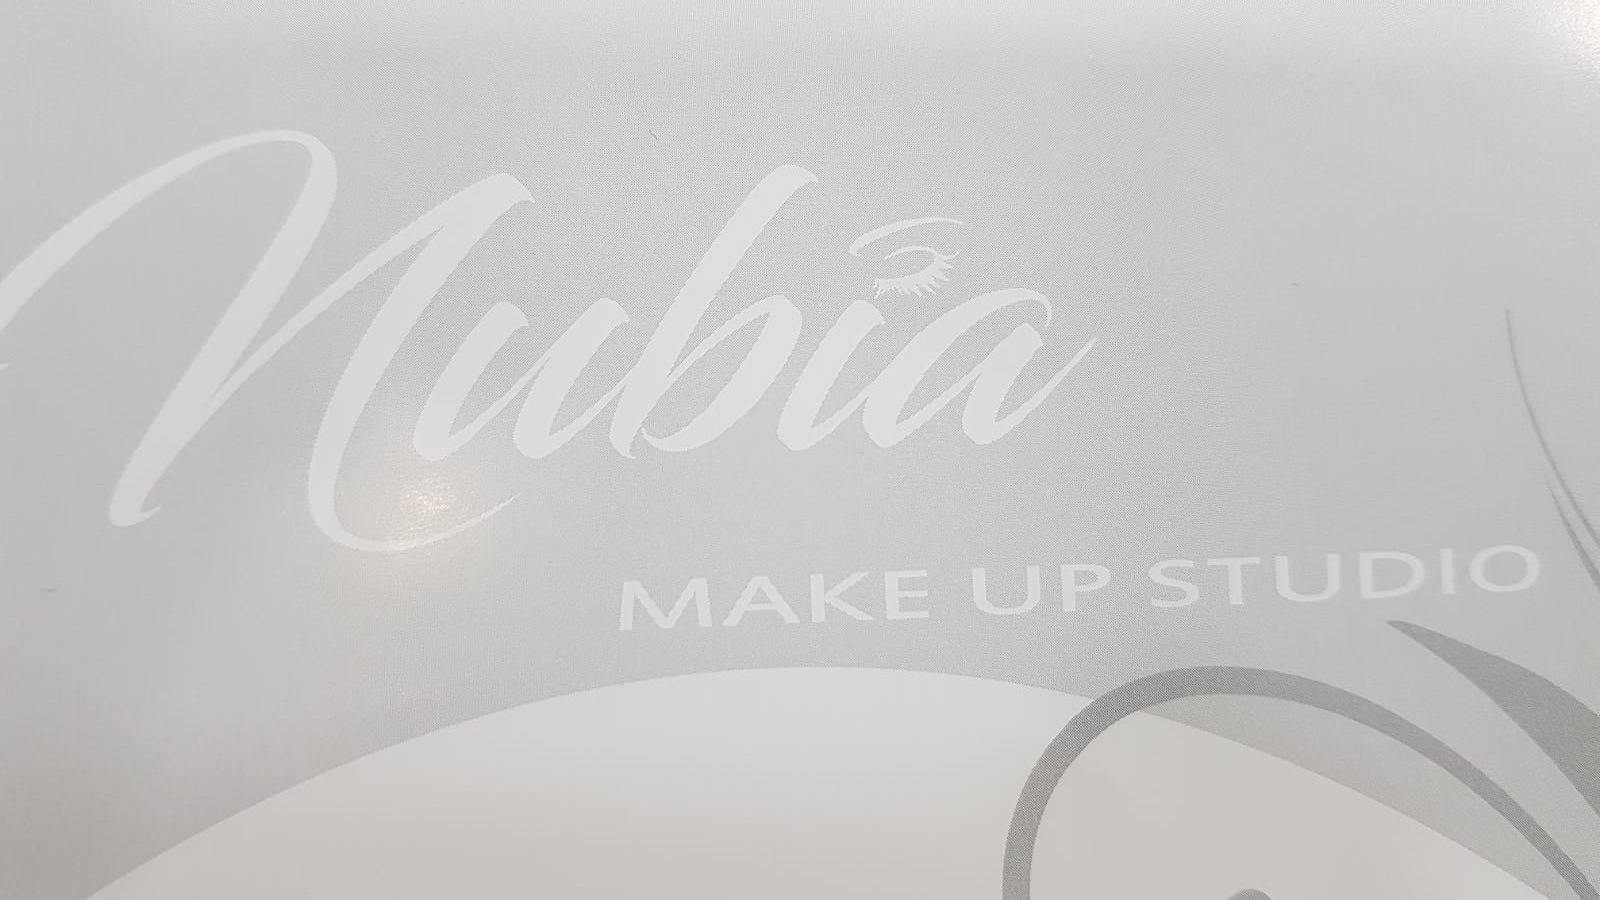 Nubia Make up Studio